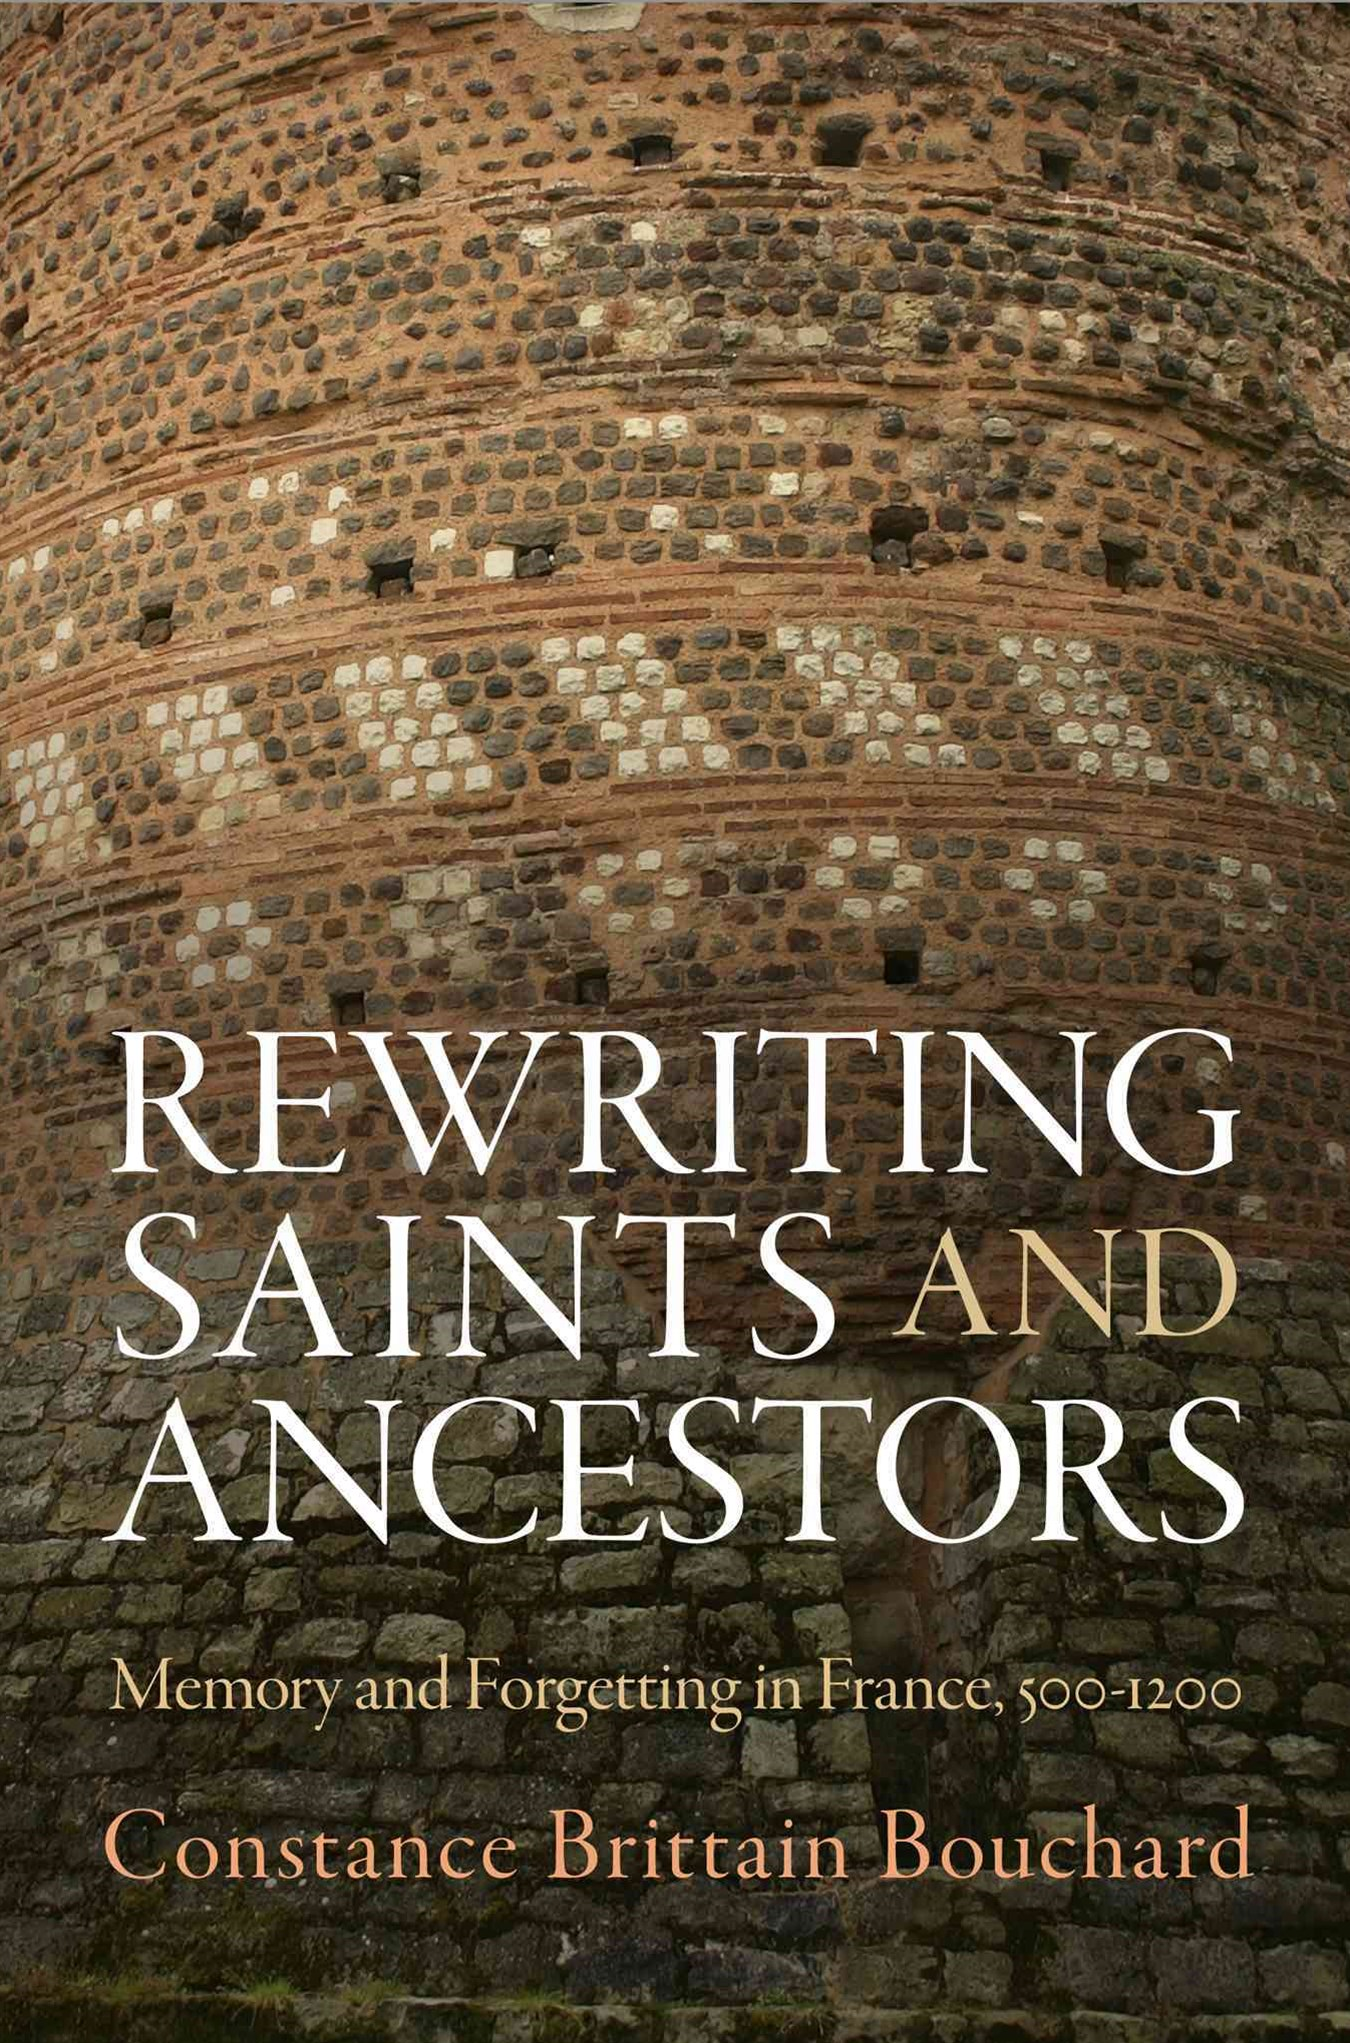 Rewriting Saints and Ancestors